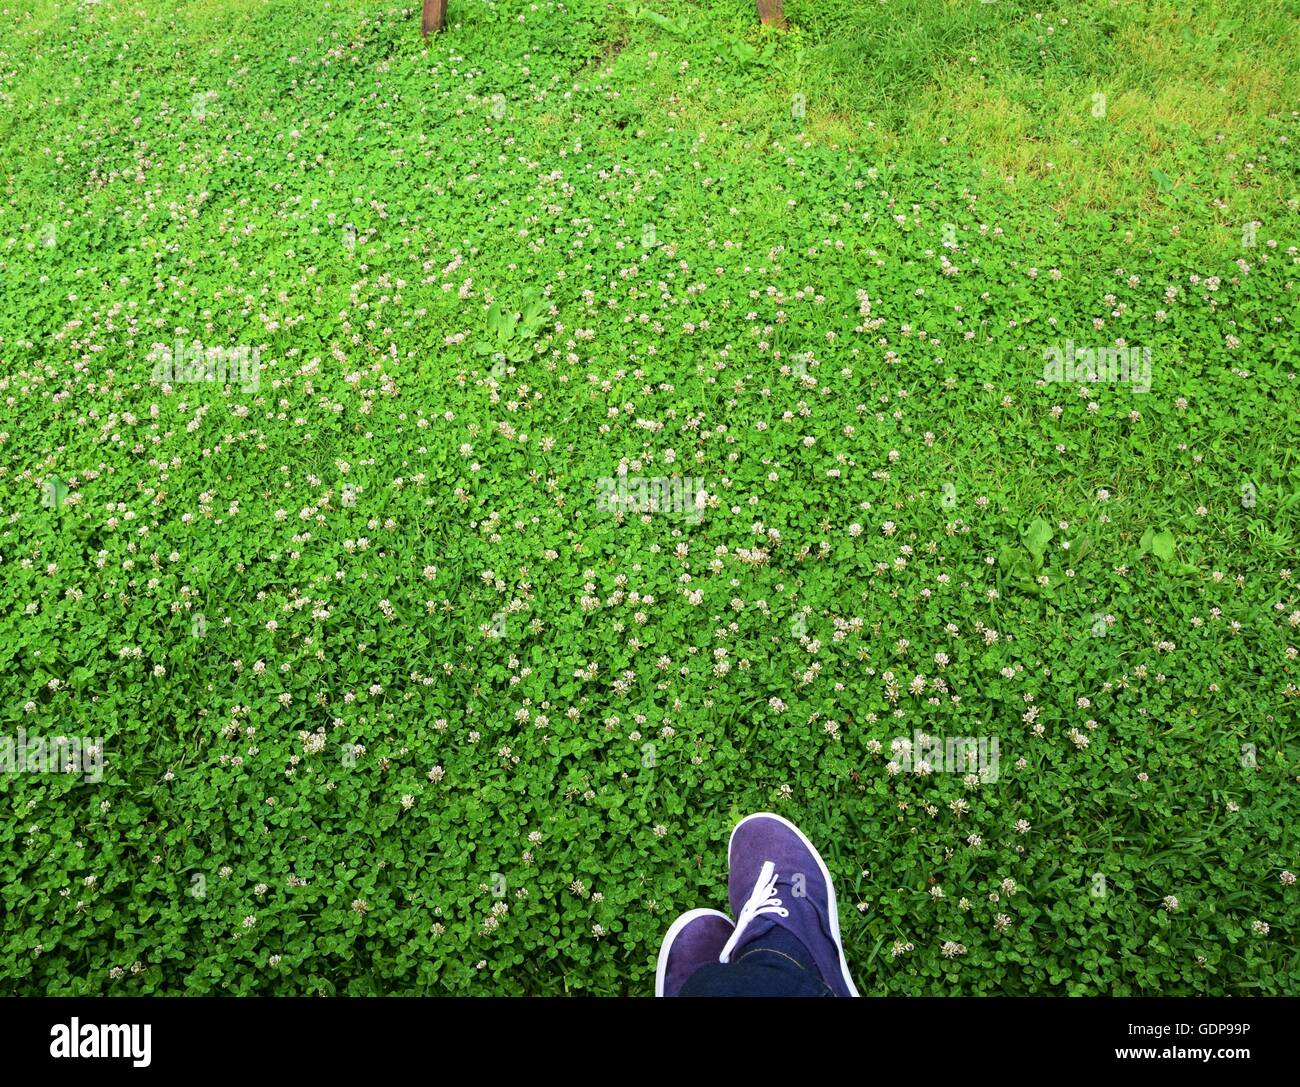 Top view of human feet on fresh green grass, relaxing moments in the nature, space for text - Stock Image